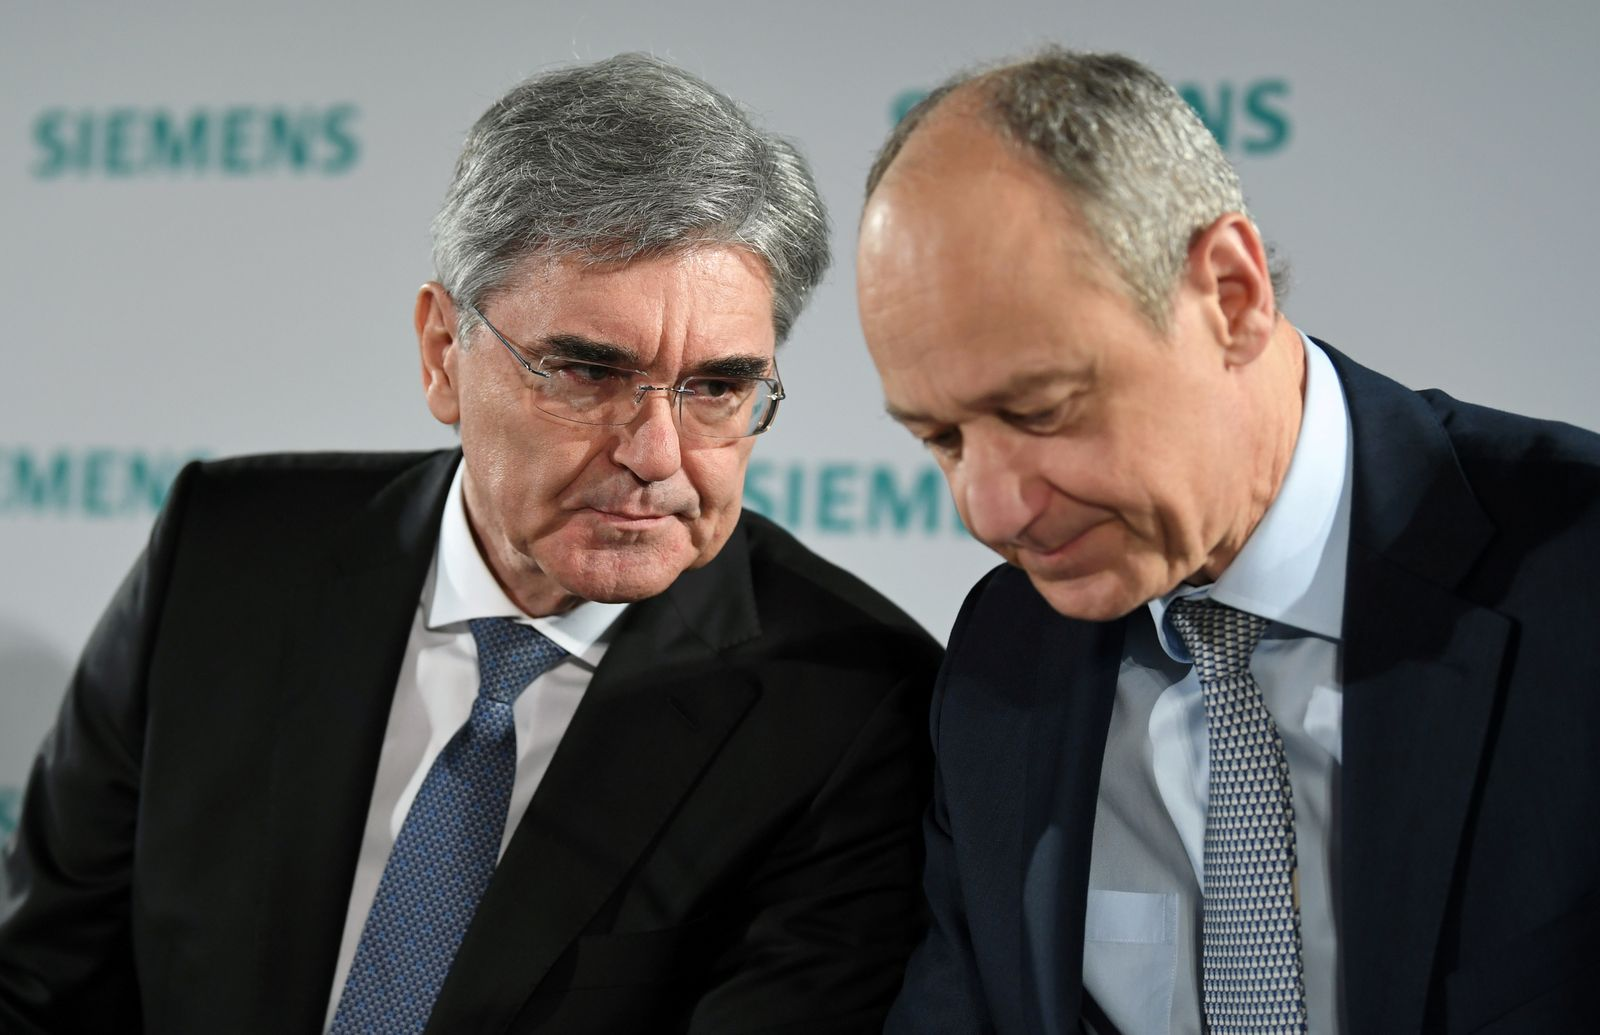 German engineering group Siemens CEO Joe Kaeser and deputy CEO Roland Busch attend a news conference prior to the annual general meeting in Munich